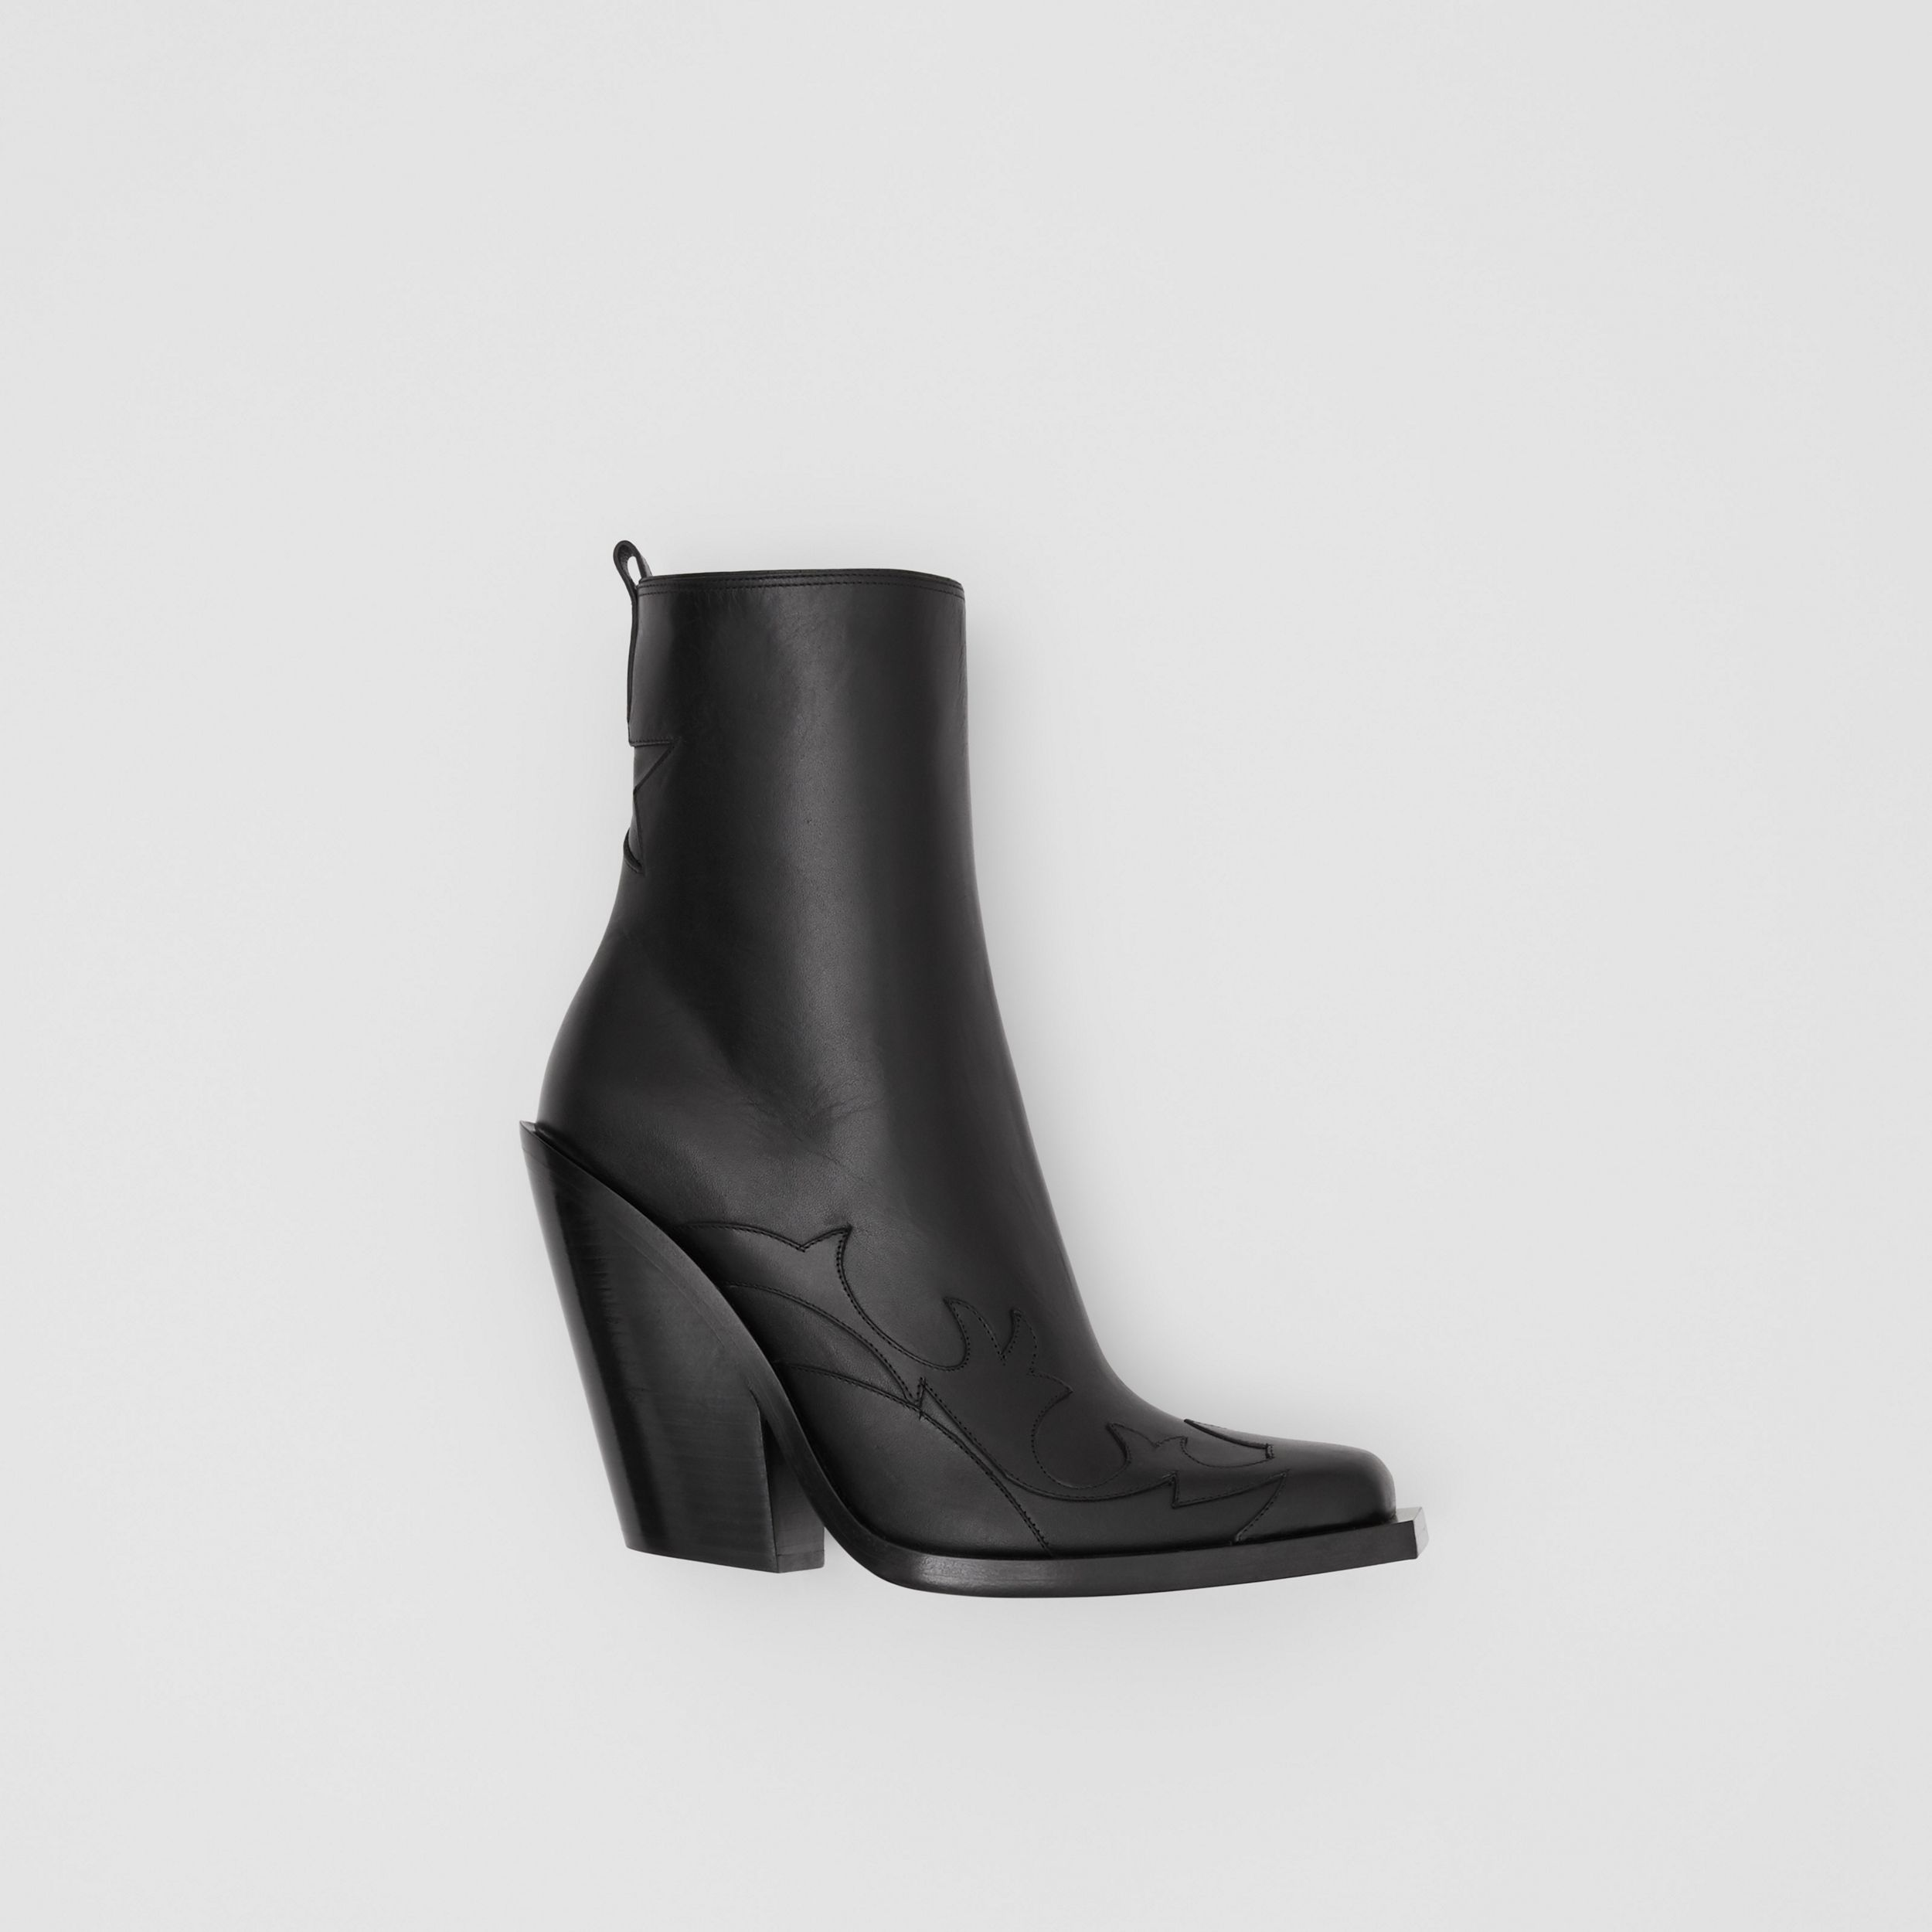 Star Detail Leather Block-heel Ankle Boots in Black - Women | Burberry United Kingdom - 1